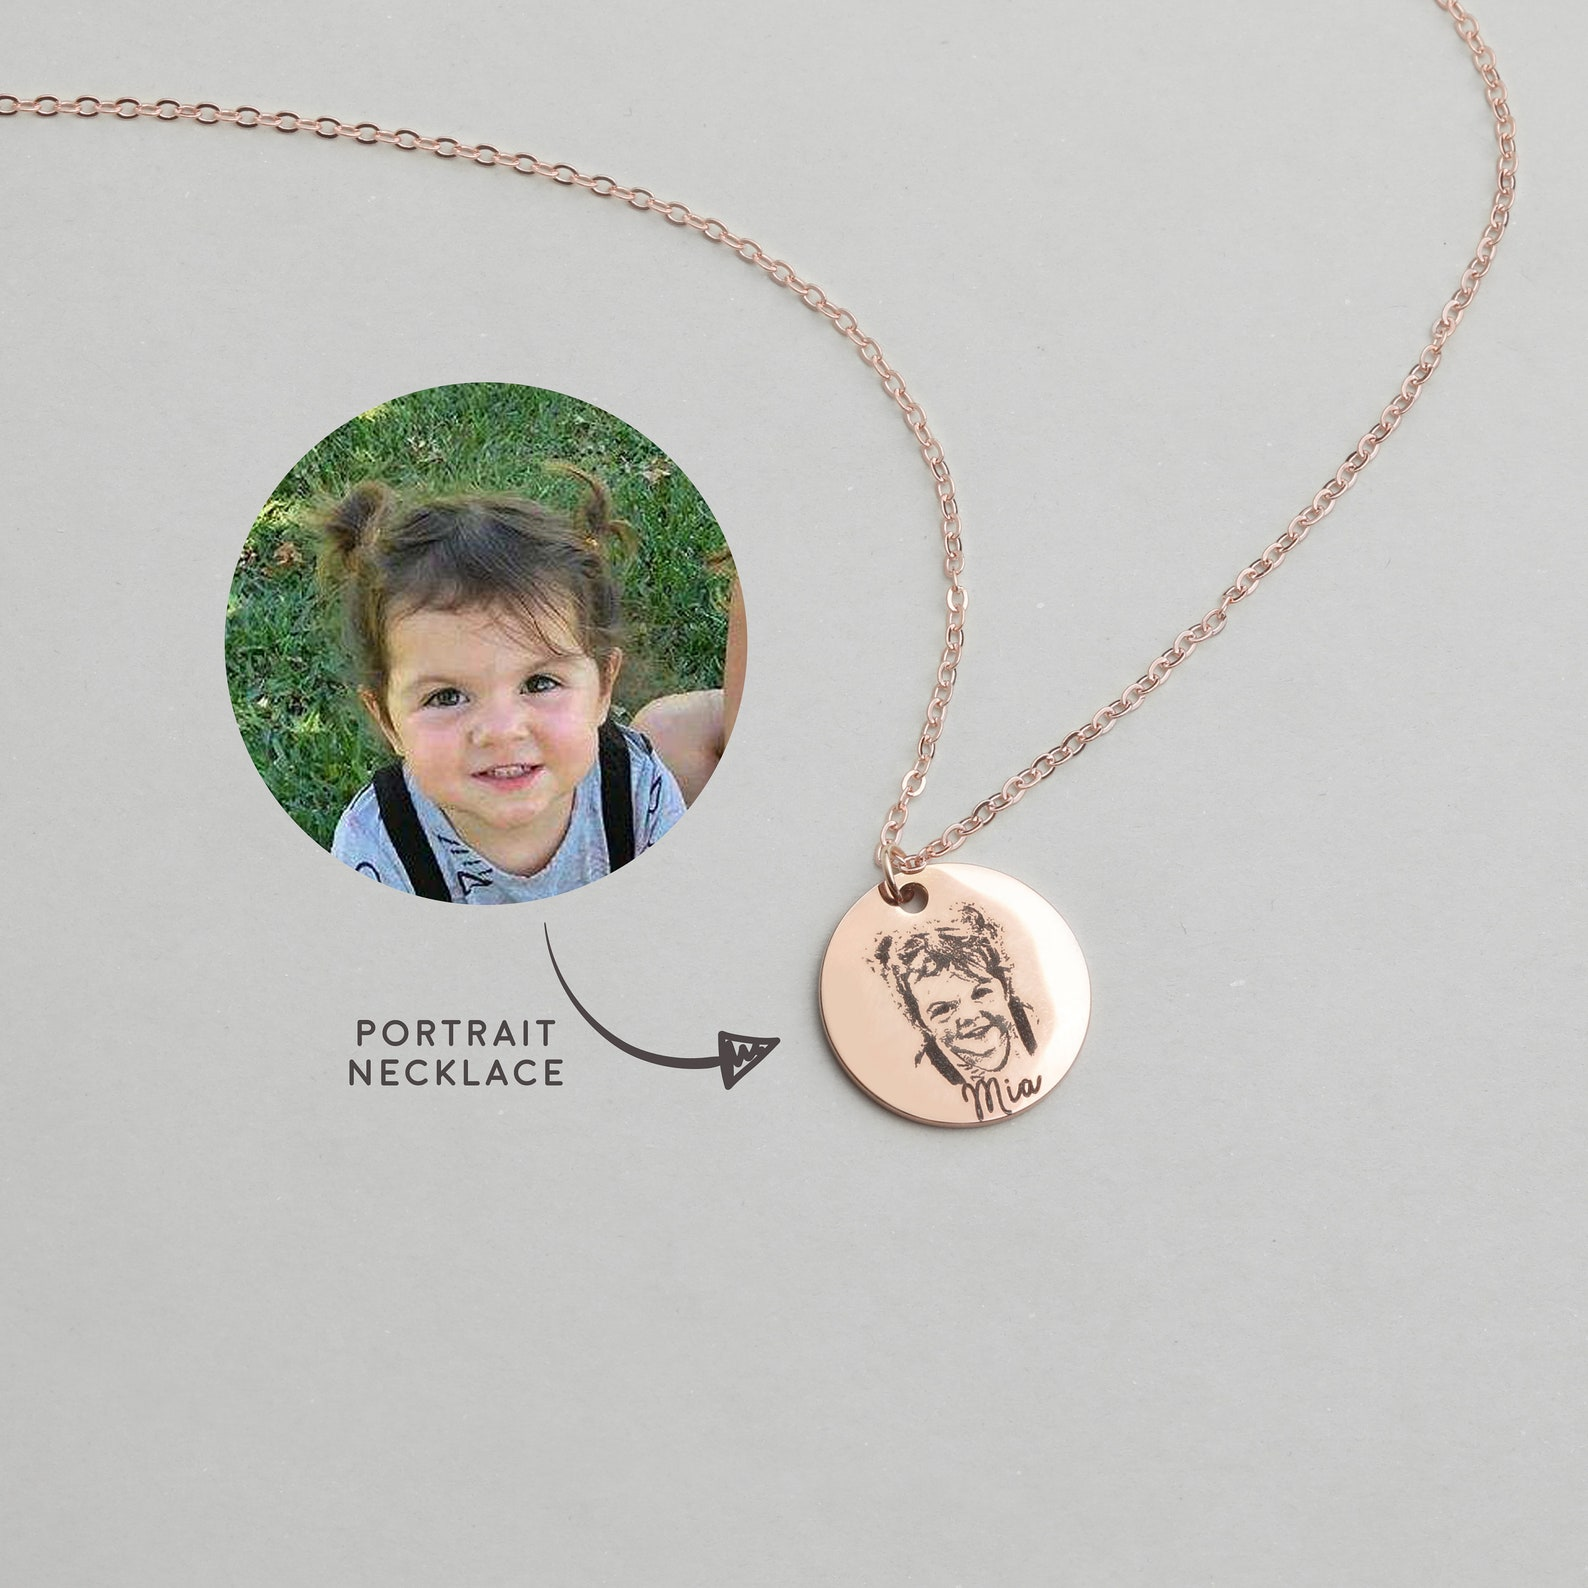 Custom Portrait Necklace